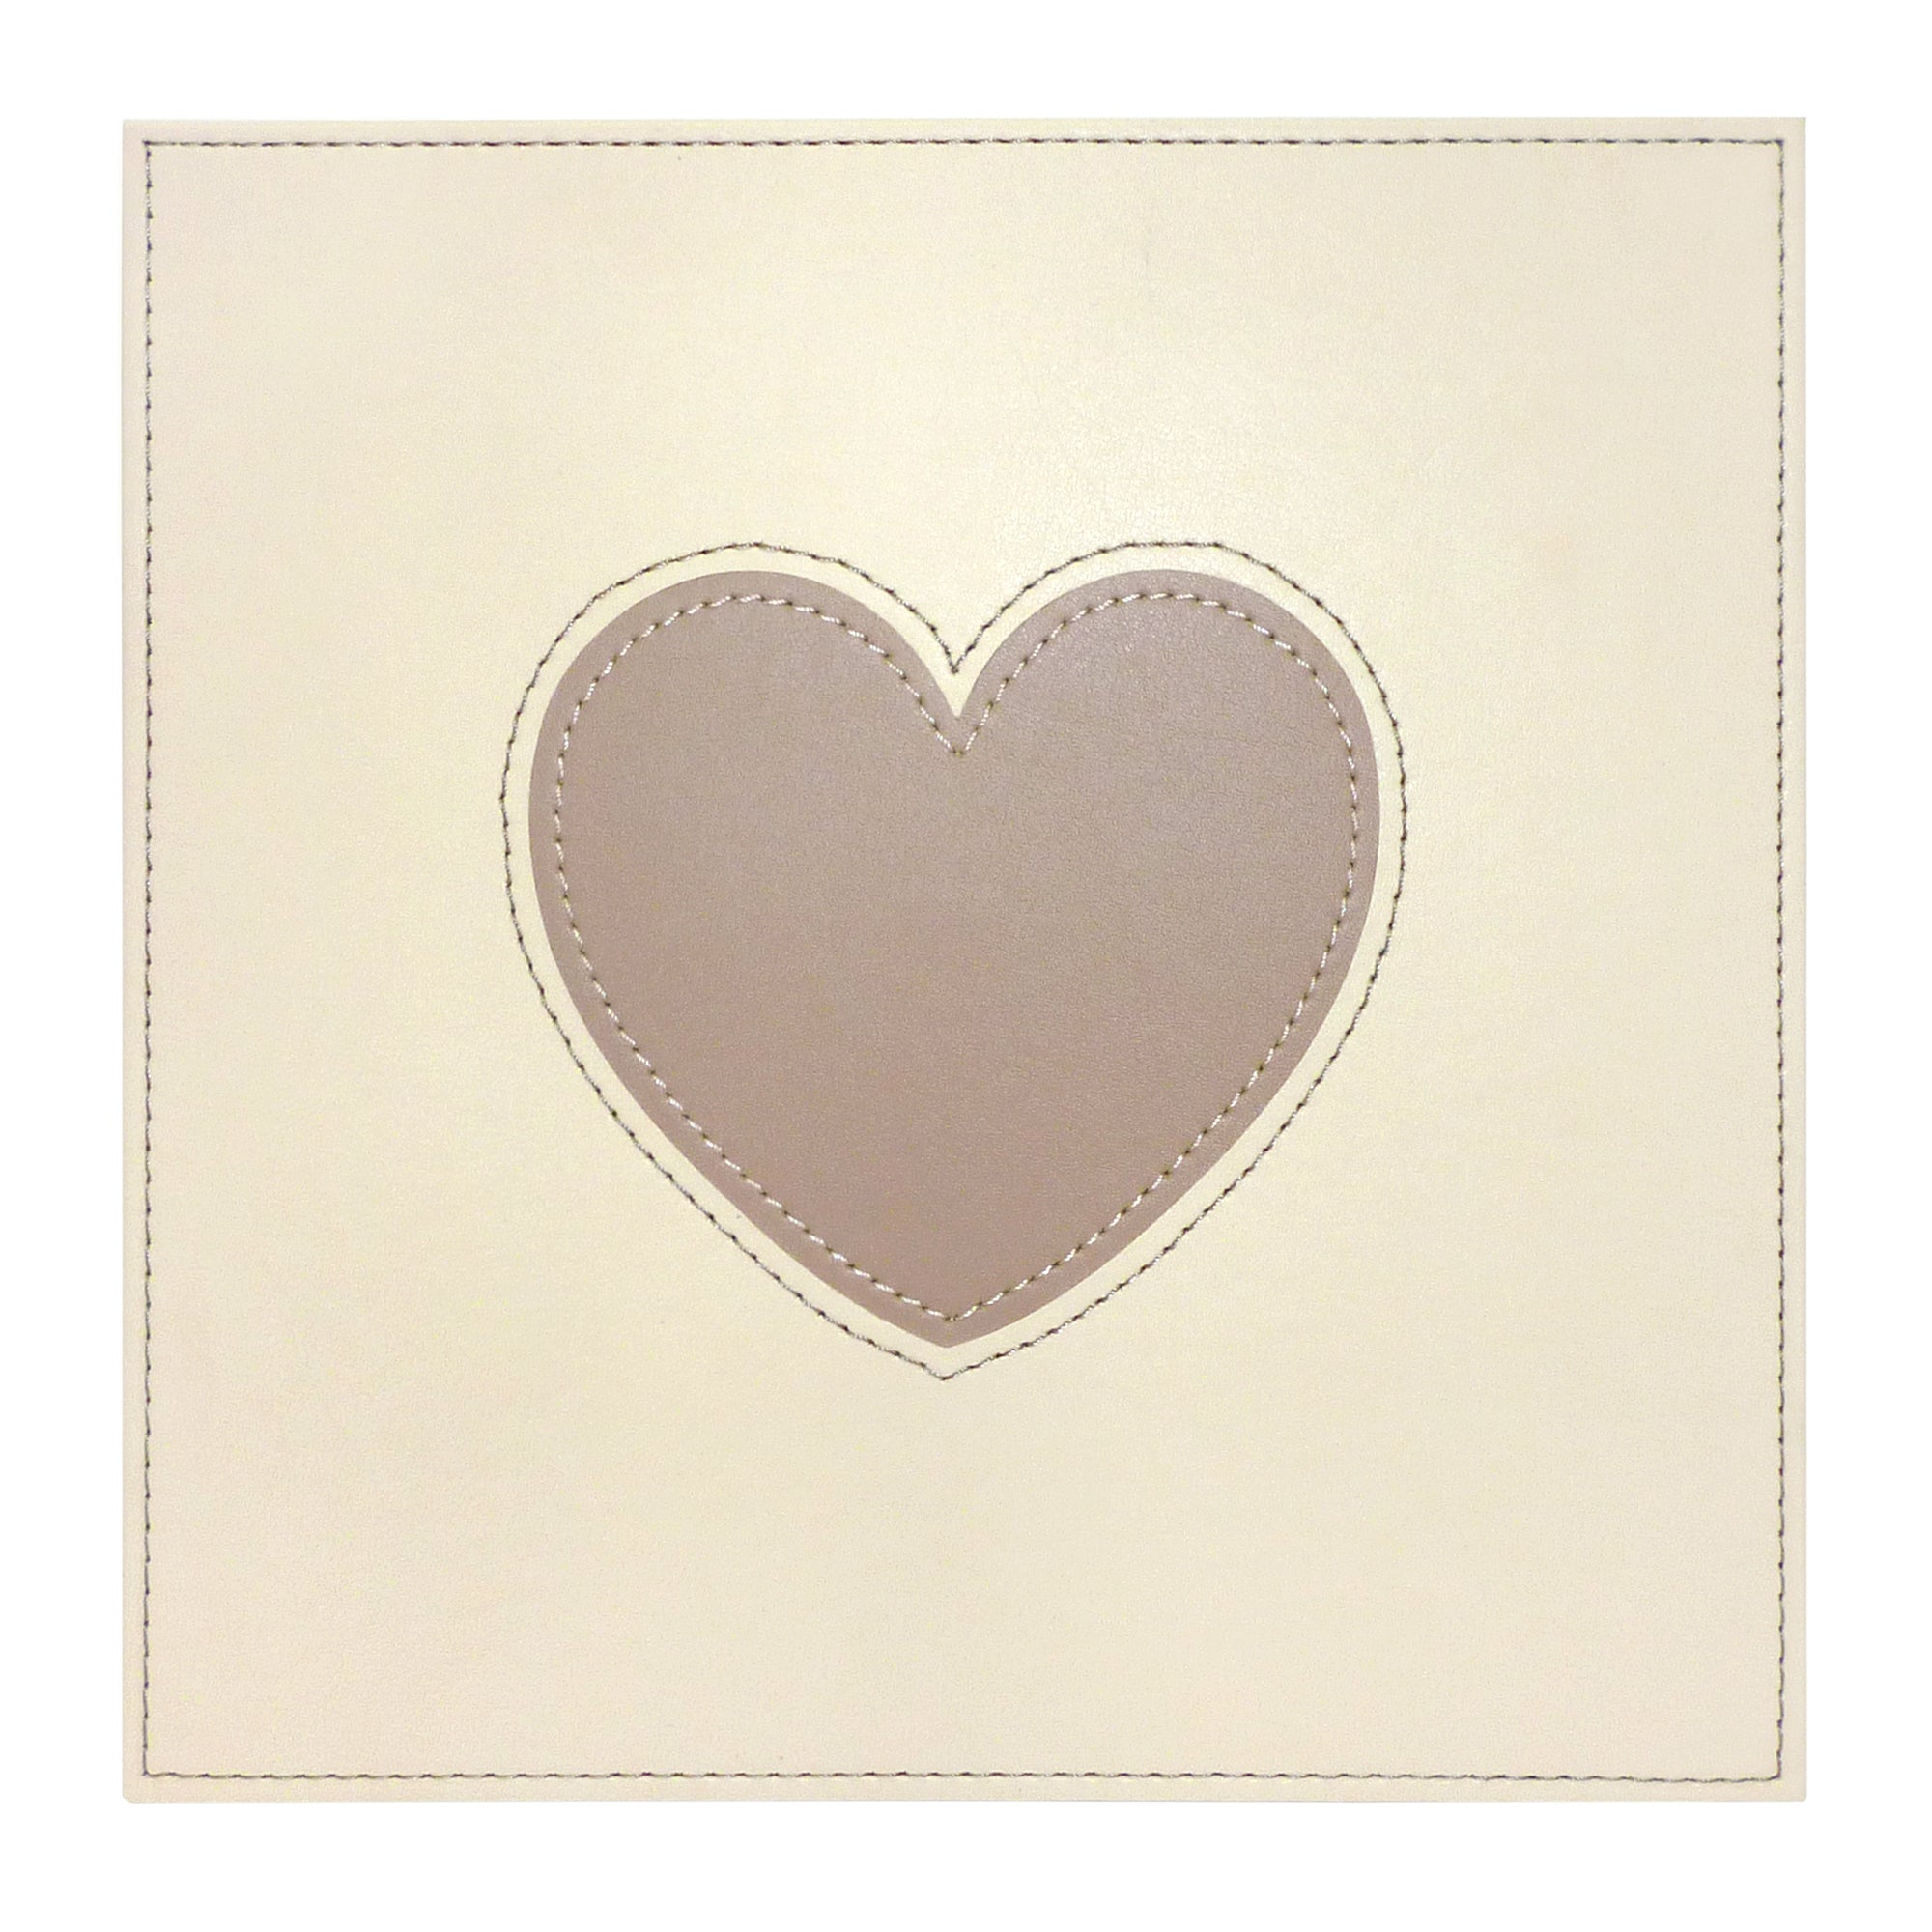 Faux Leather Heart Placemats 4 Pack